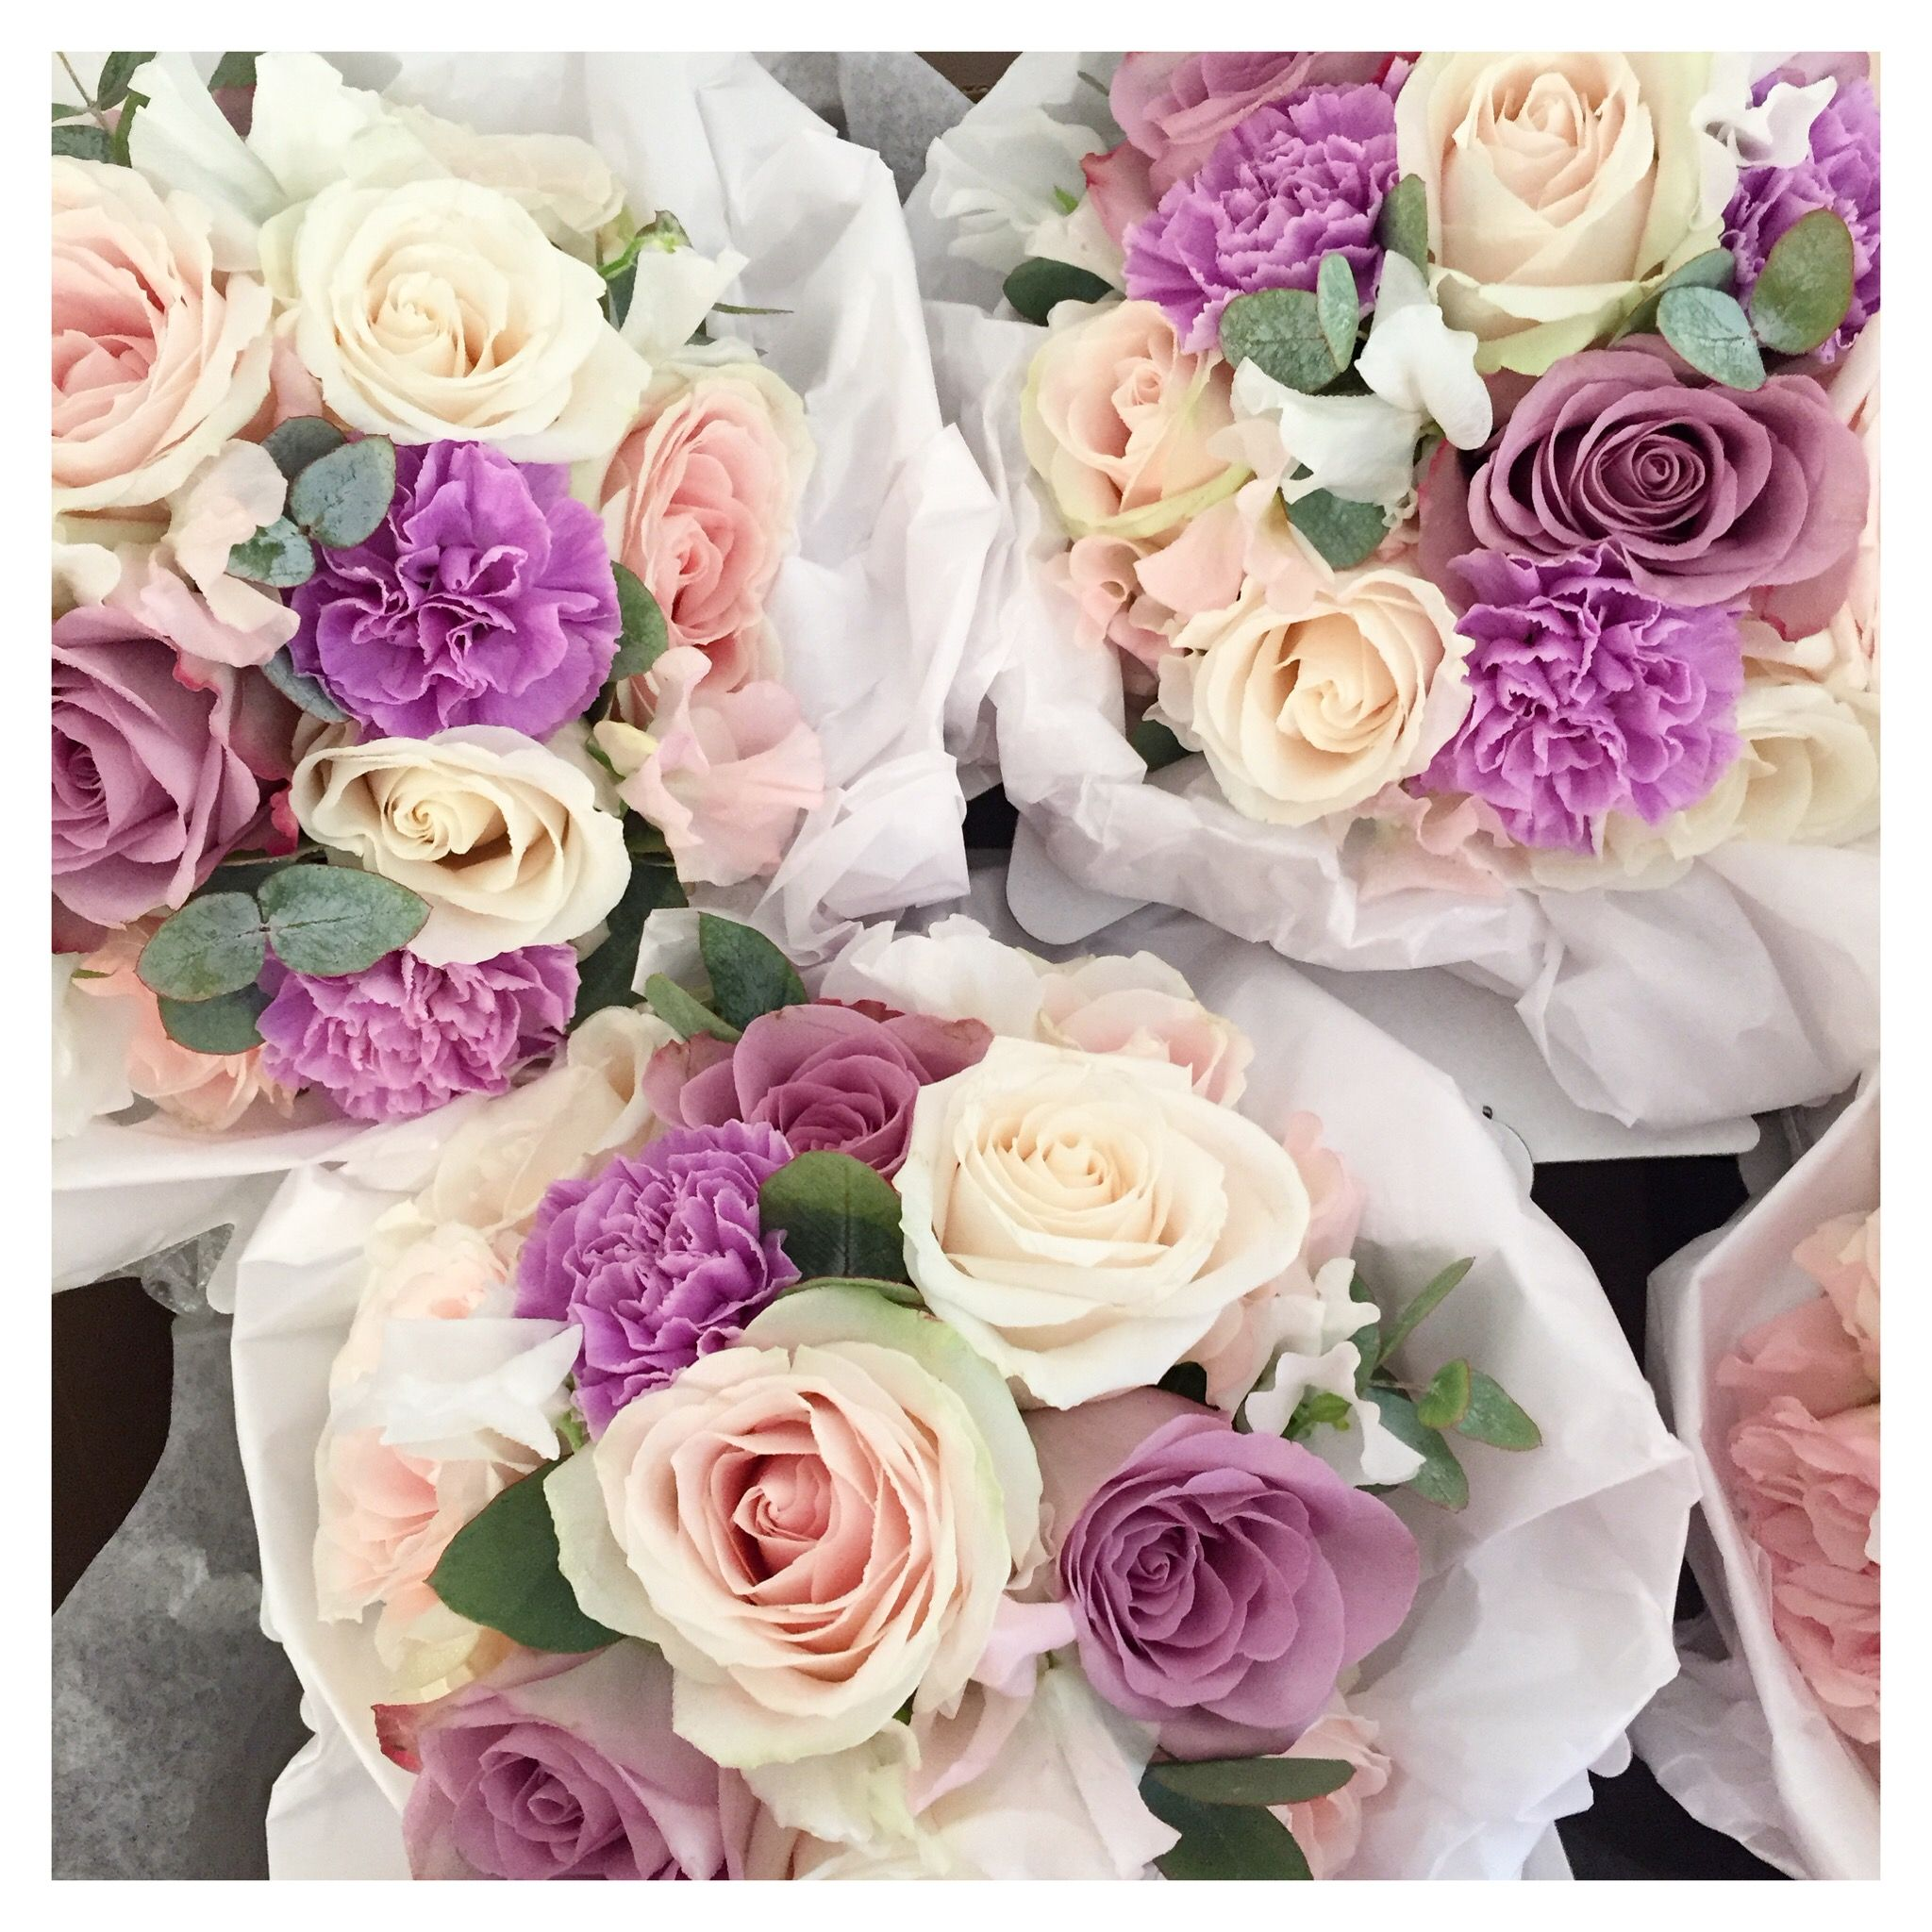 Lilac Blush And Ivory Bridesmaid Bouquets Surrey Wedding Flowers By Boutique Blooms Floral Design